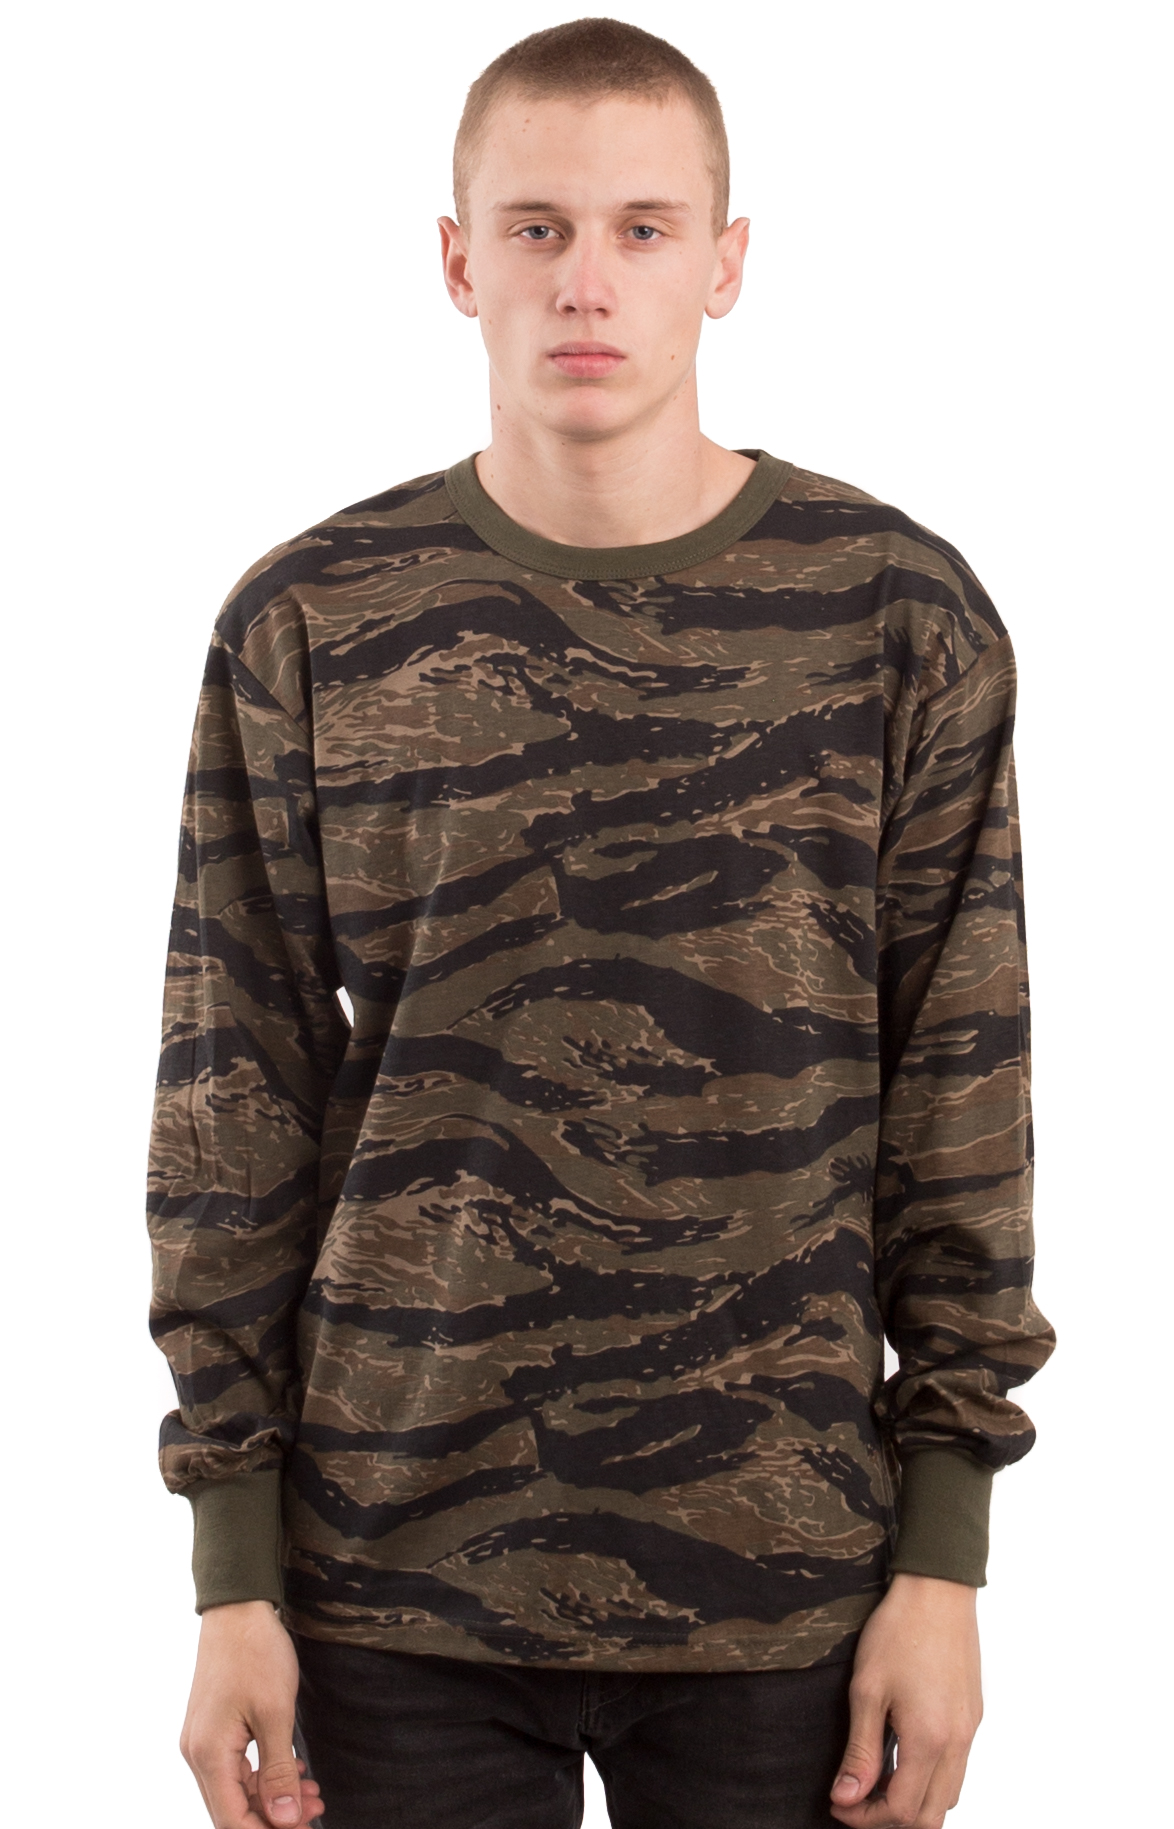 (66787) L/S Camo Shirt - Tiger Stripe Camo